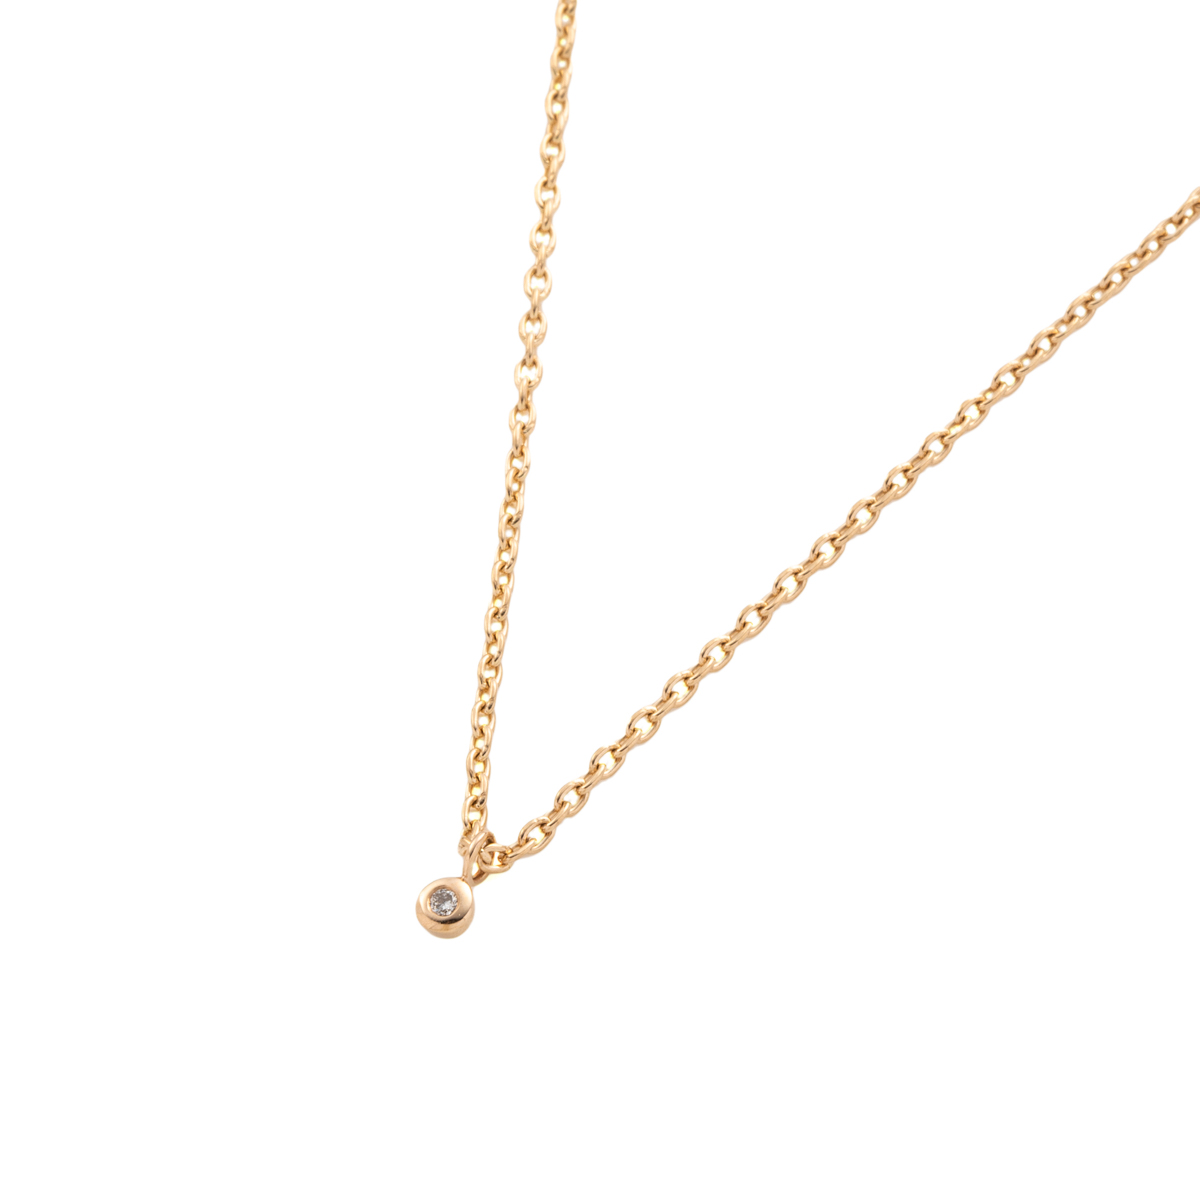 Diamond Chain Necklace AB36KDN K10  チェーンネックレス ダイヤモンド